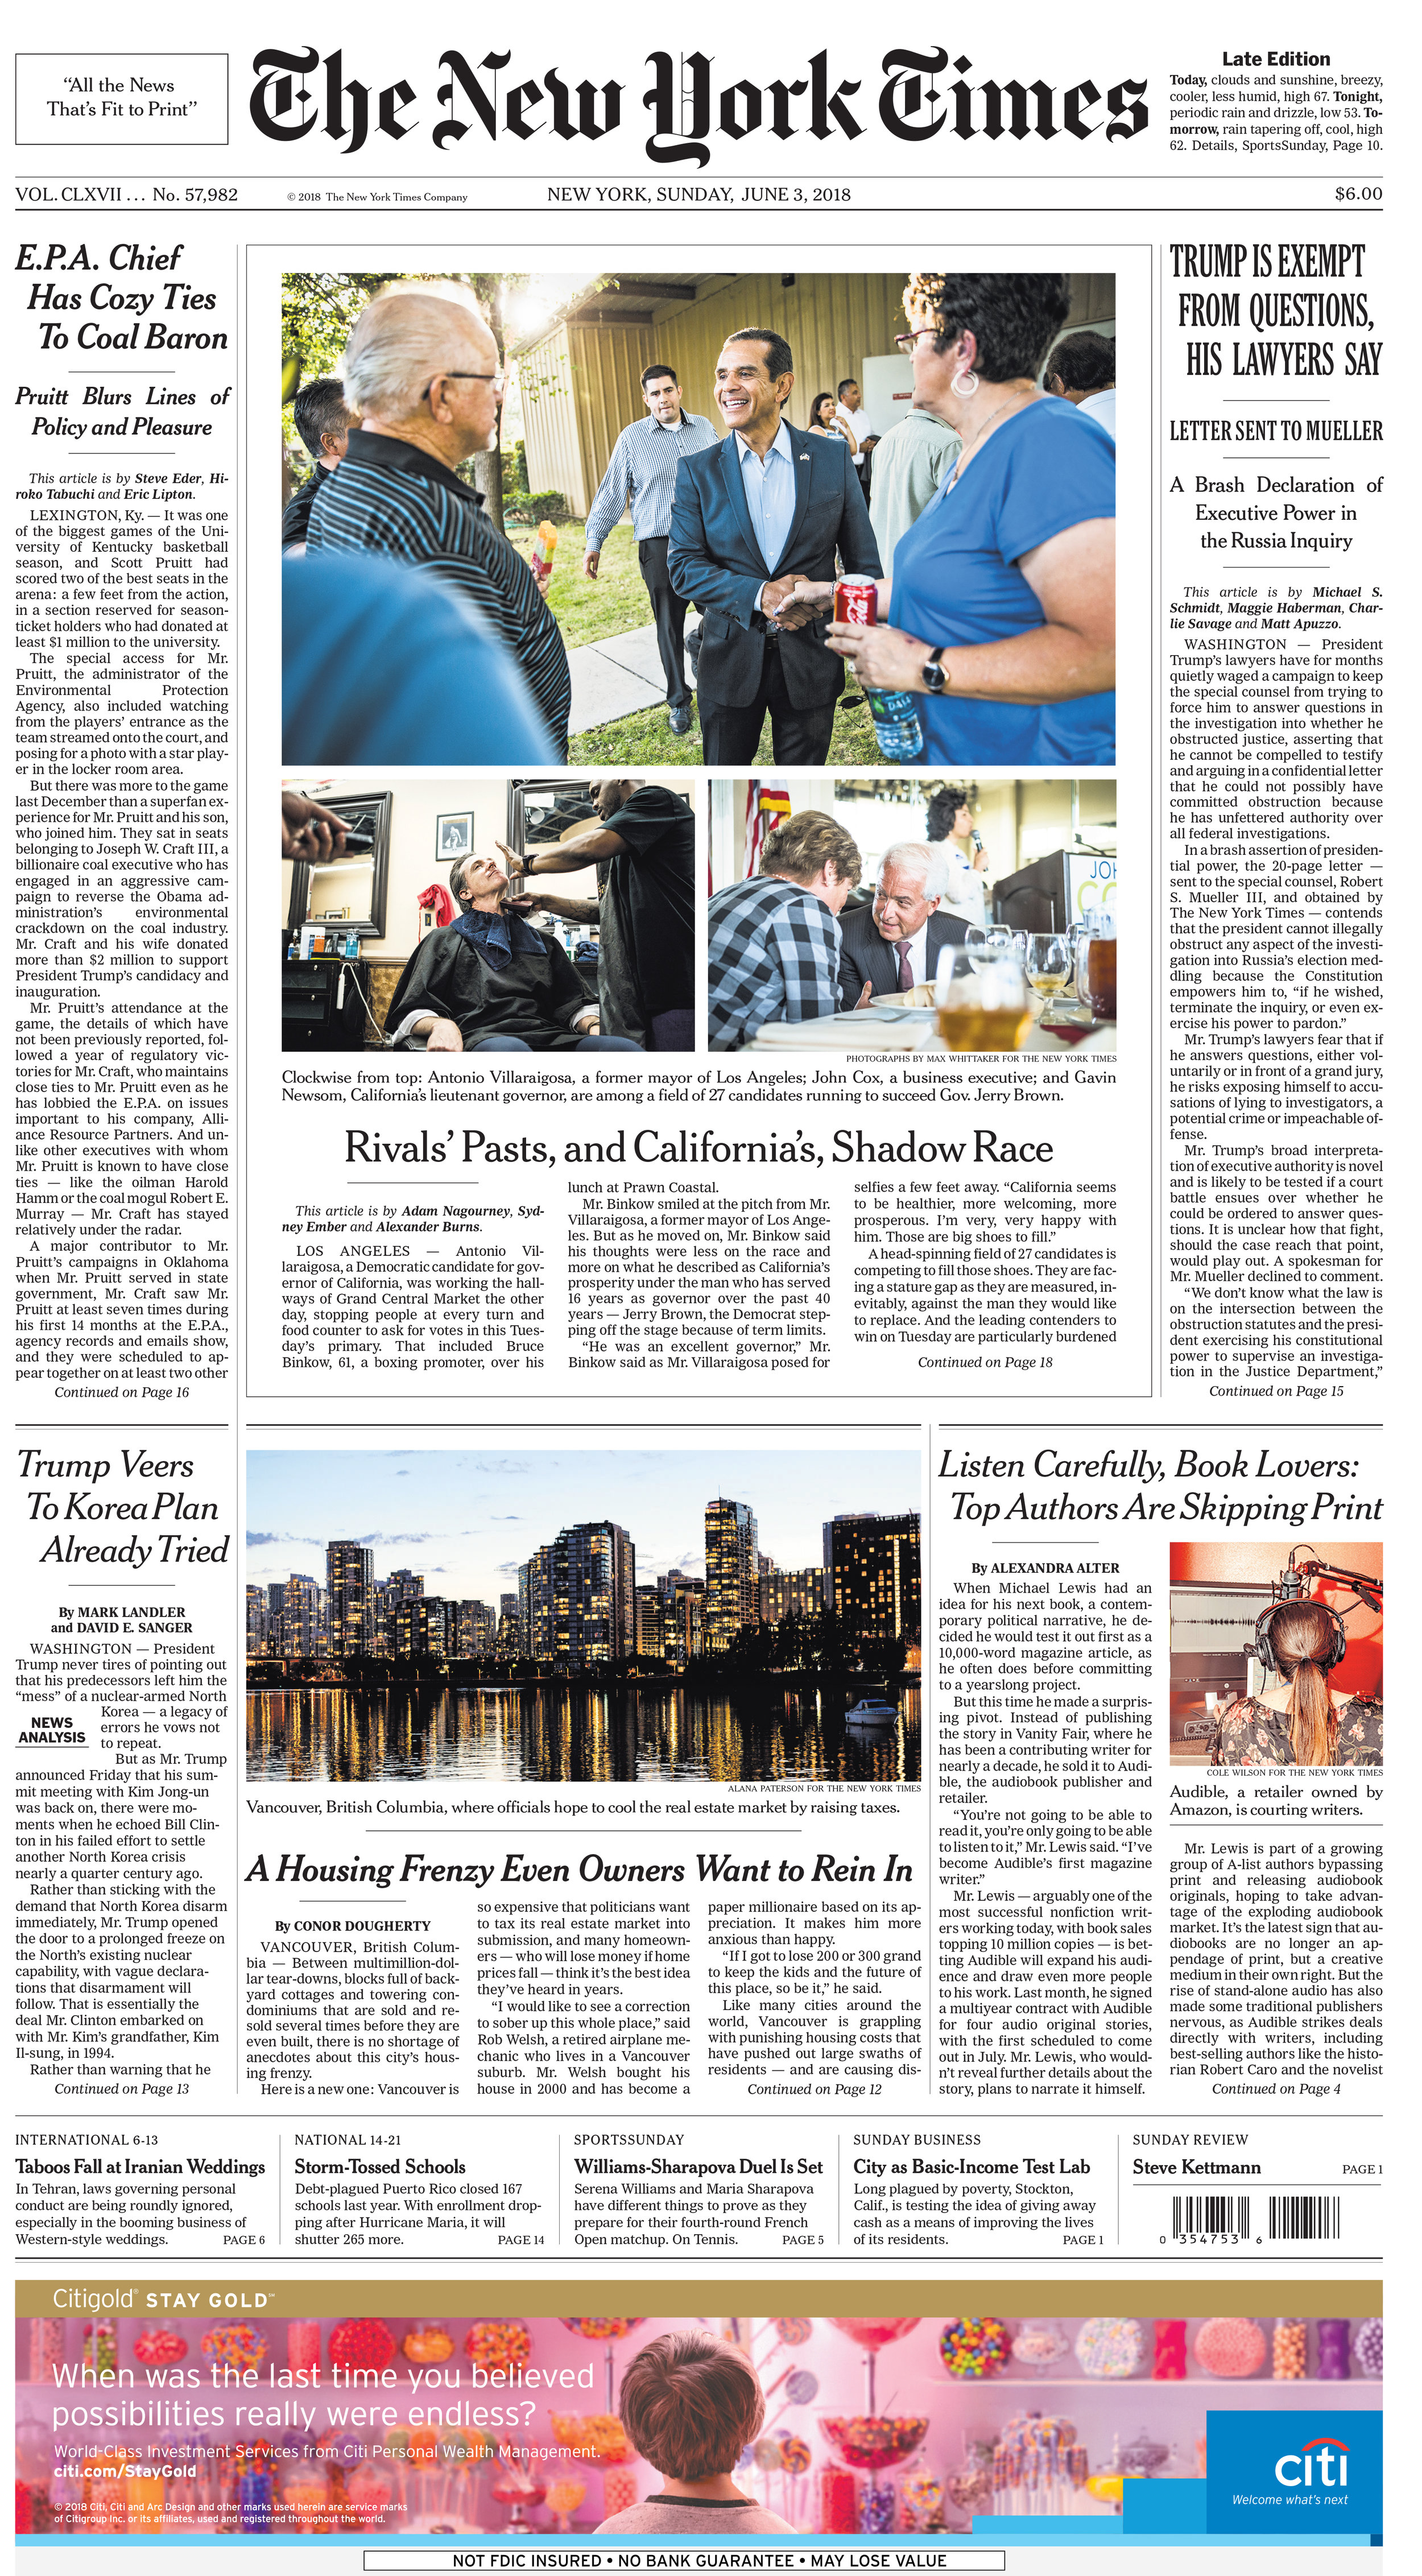 NYT front page 6.3.18.jpg